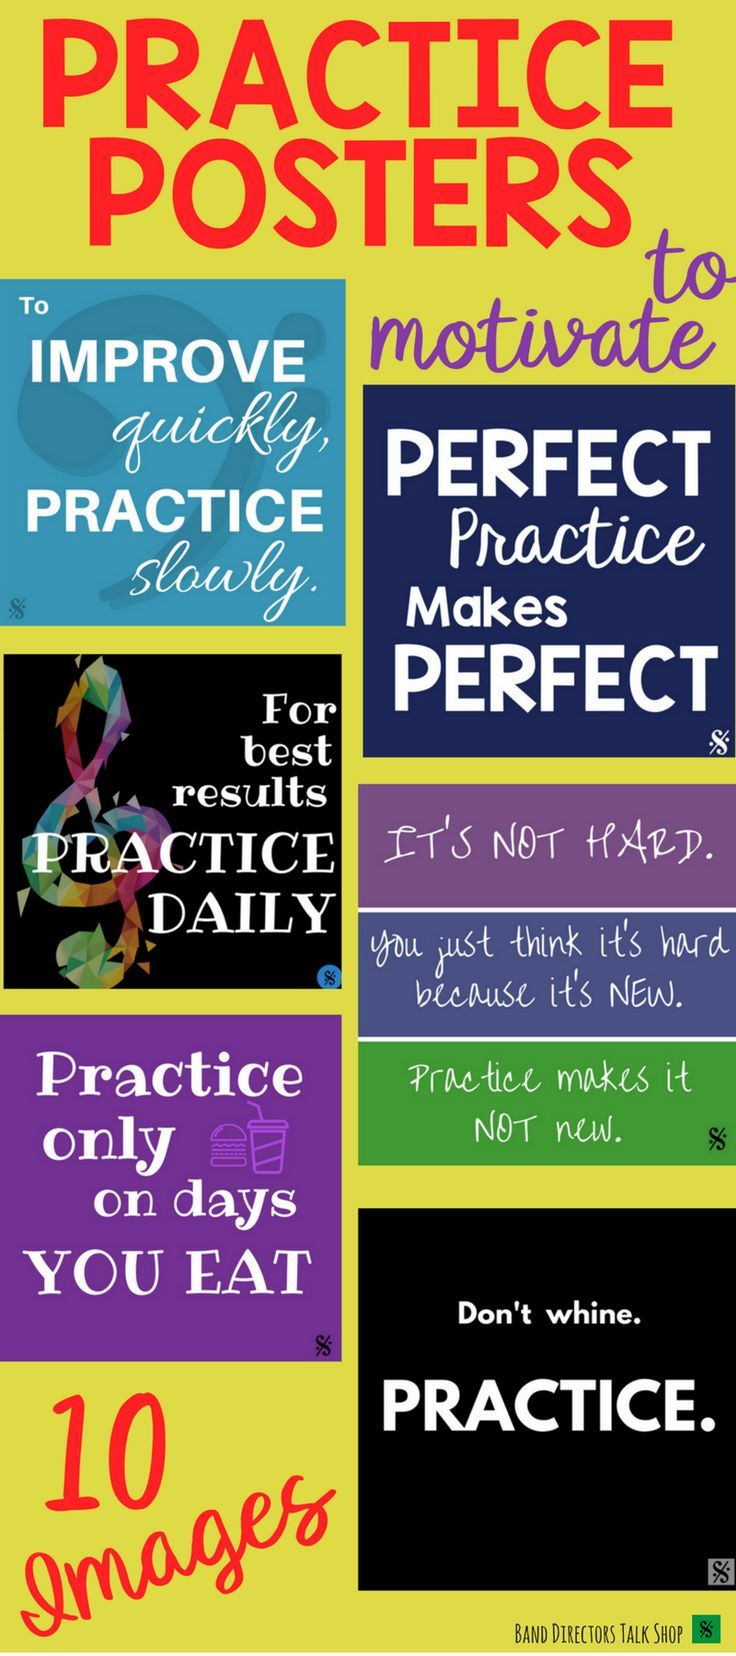 "$6 Practice Habits Posters! Visit ""Band Directors Talk Shop"" on Teachers Pay Teachers for band lesson plans, band games, band activities, beginning band ideas, band bulletin board sets, rhythm games, note name games, music word walls, practice reports, rehearsal techniques, woodwind, brass and percussion instrument care, band teaching strategies, motivational quotes, elementary music ideas, elementary music games, elementary music bulletin board ideas and more!"